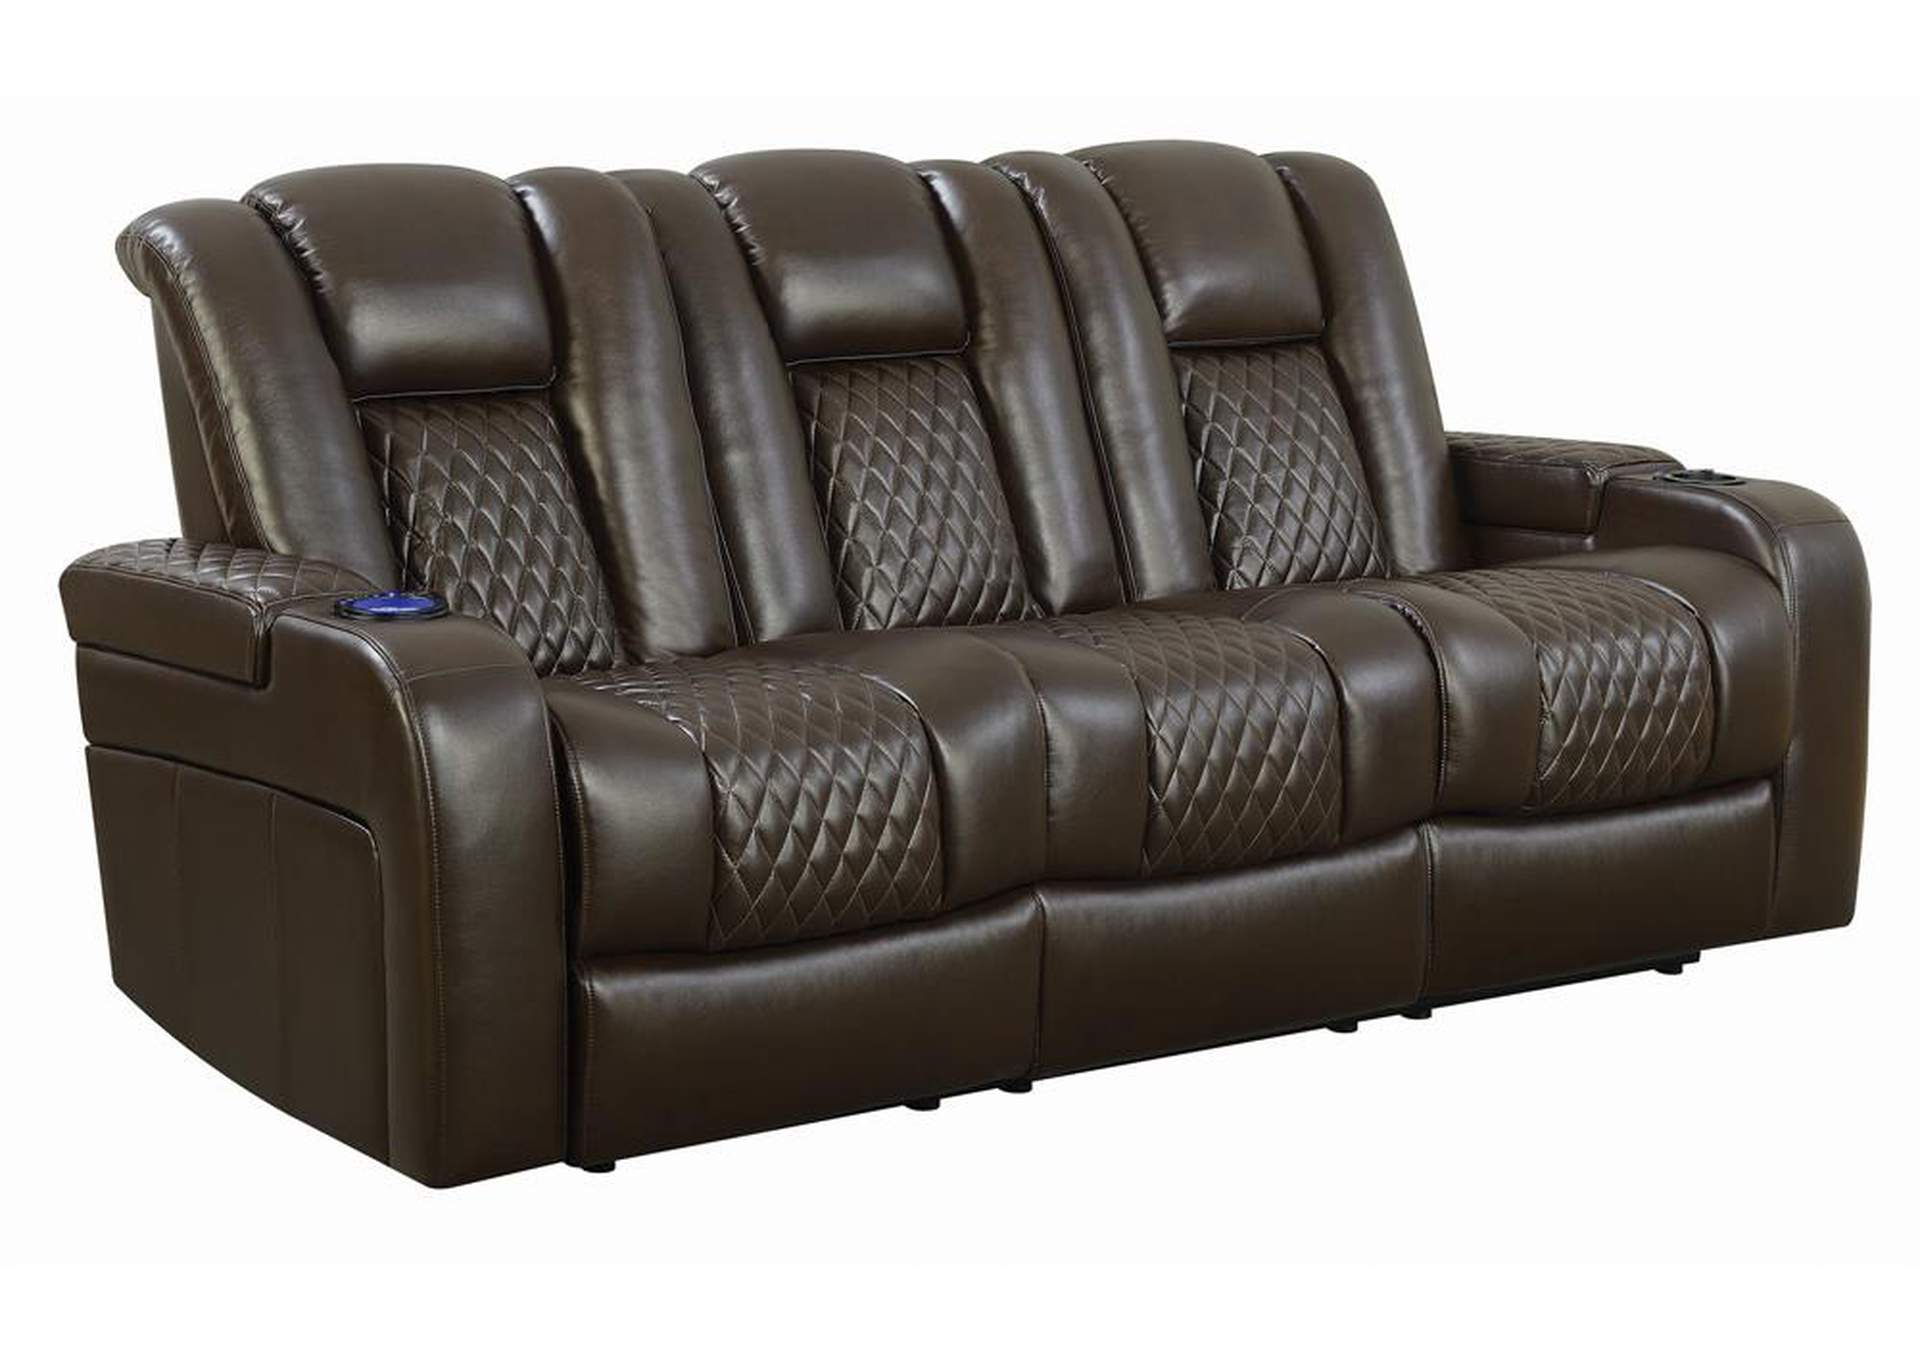 Birch Delangelo Brown Power Motion Reclining Sofa,Coaster Furniture